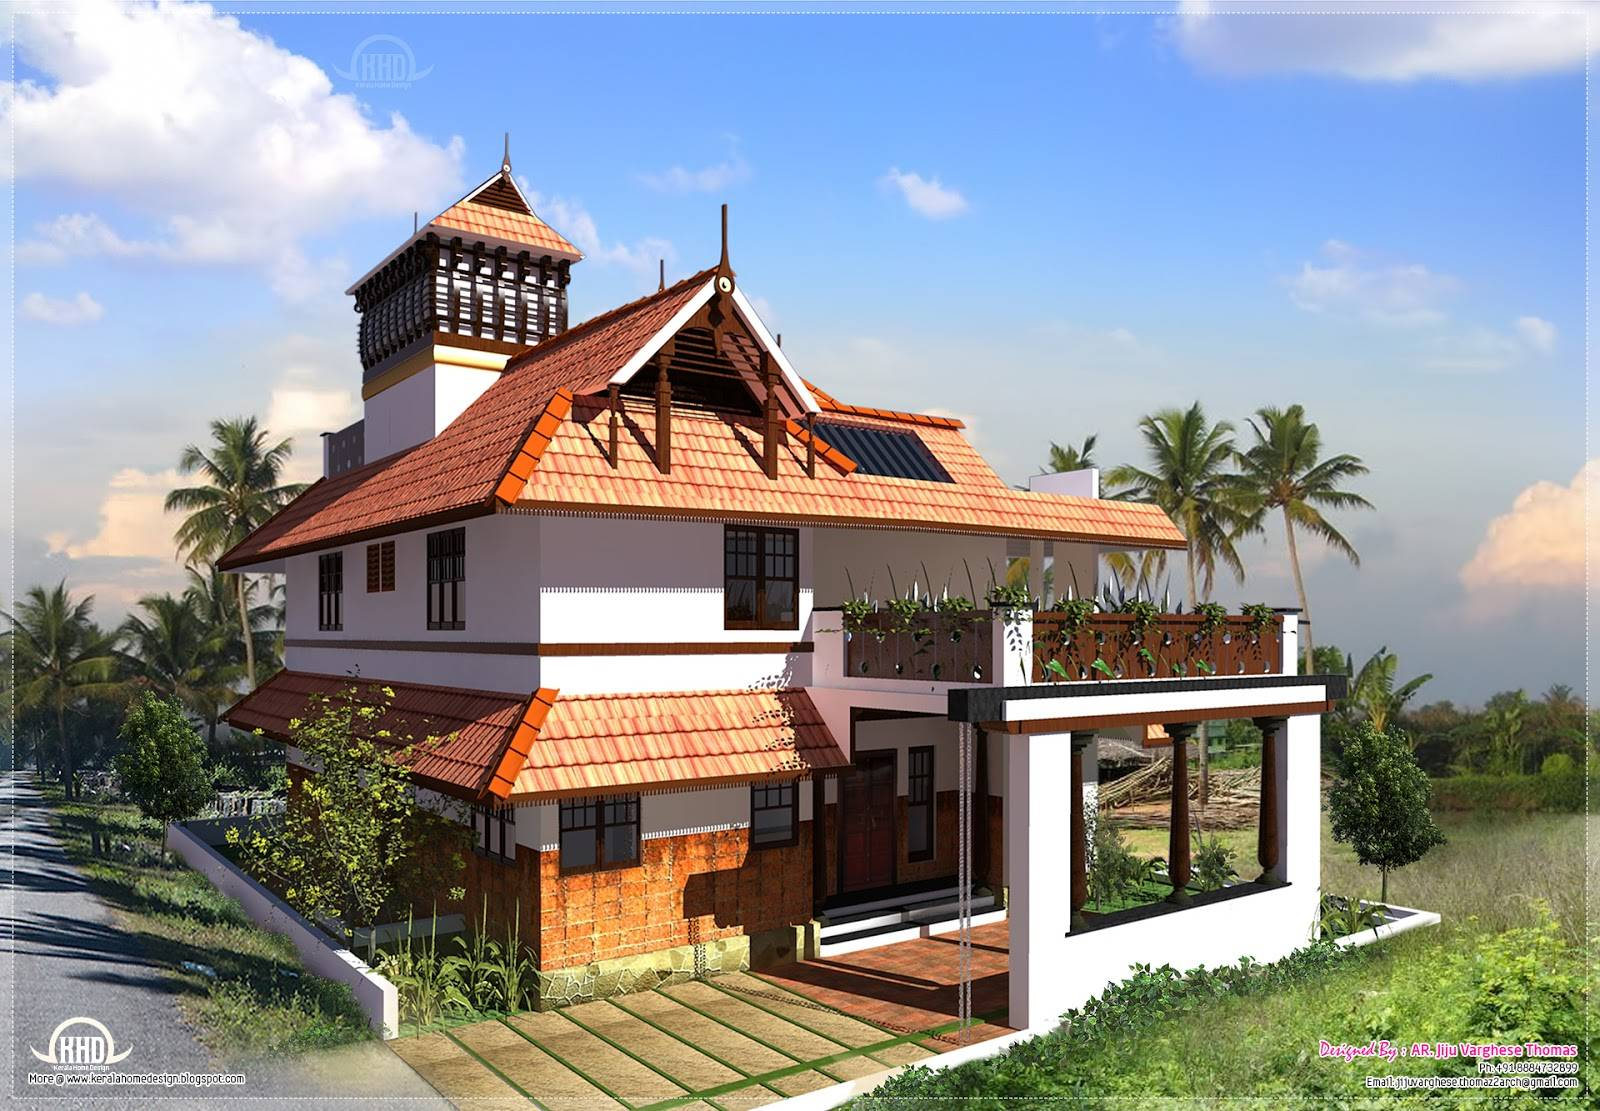 Kerala Traditional House Plan Awesome Design Roomraleigh kitchen cabinets Nice